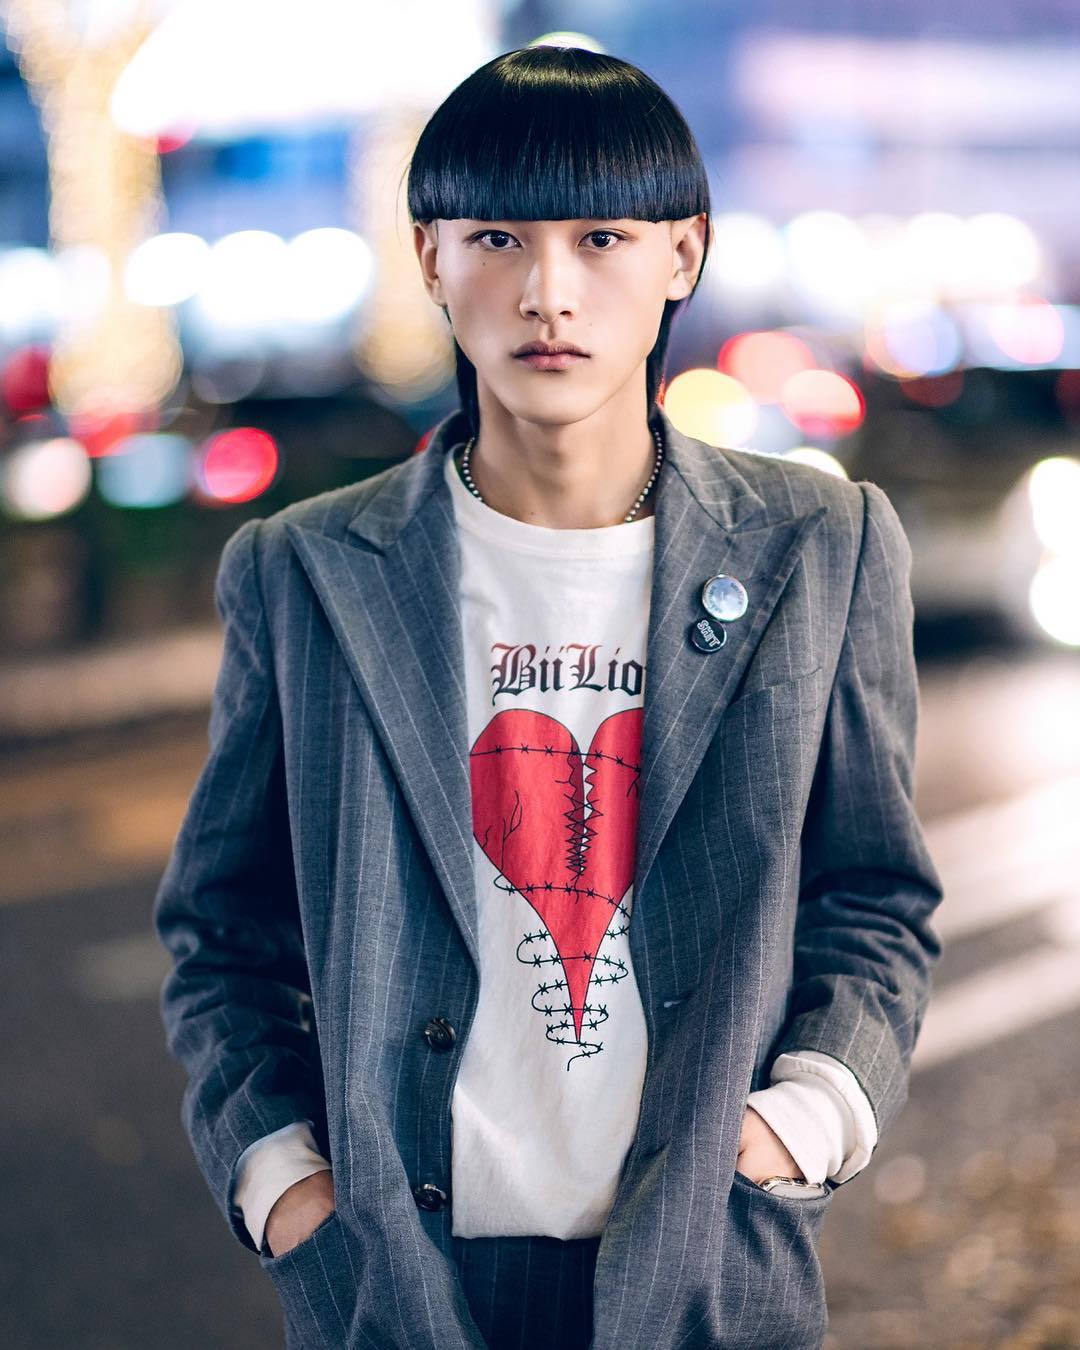 Tokyo Fashion 17 Year Old Japanese Fashion Designer Ayumi Dressing Is A Way Of Life And We Alo Japan